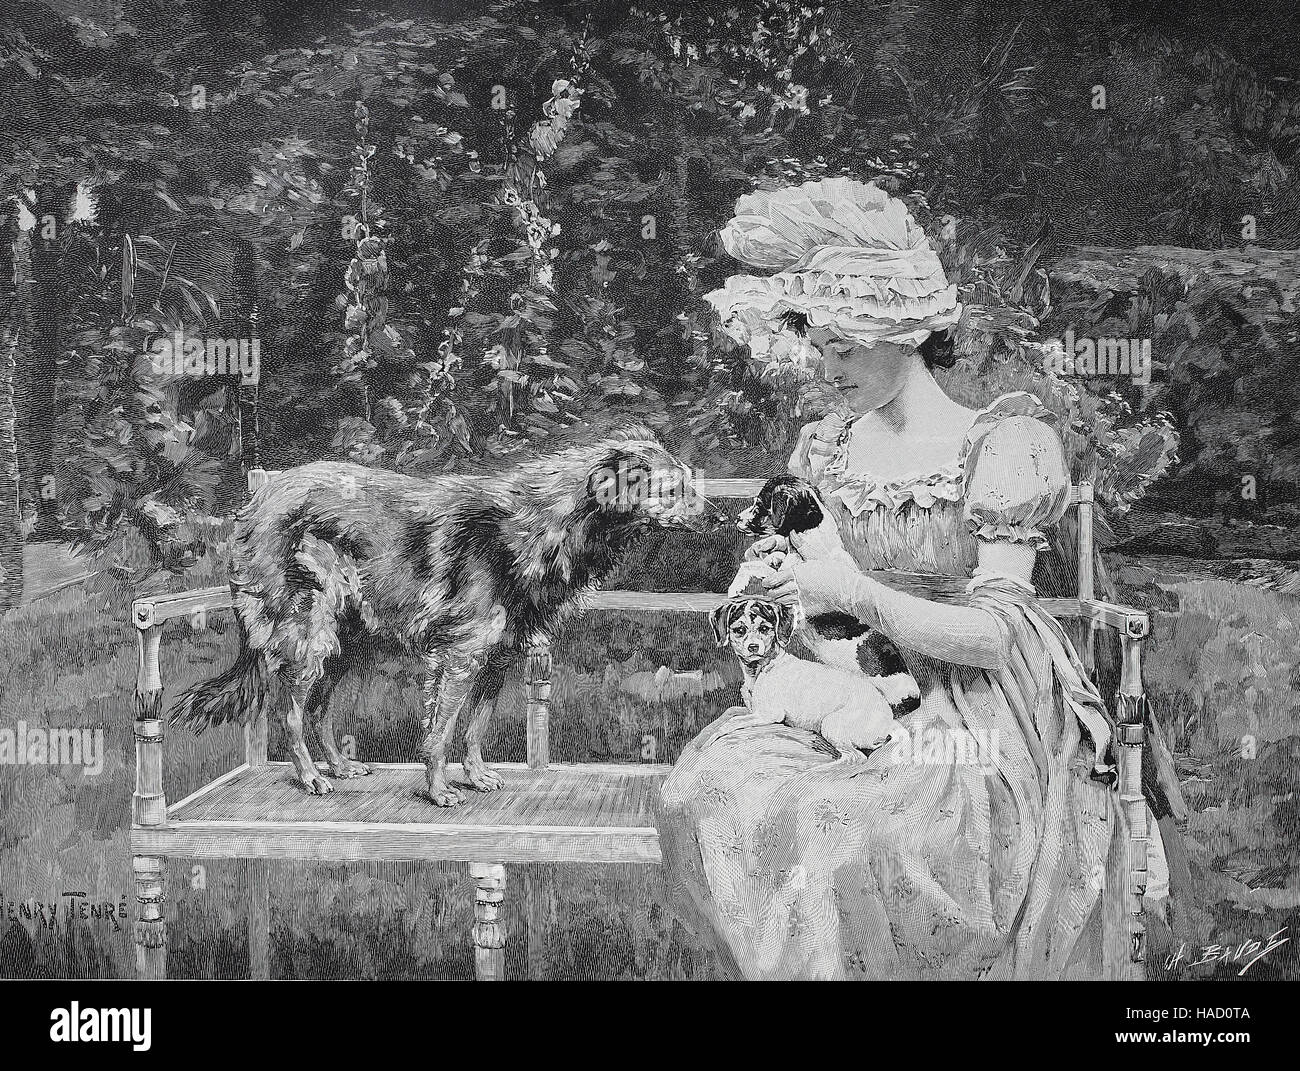 Girl with two dog puppies sitting on a bench, a bigger dog sniffing the puppy, by Henry Tenre, illustration published - Stock Image